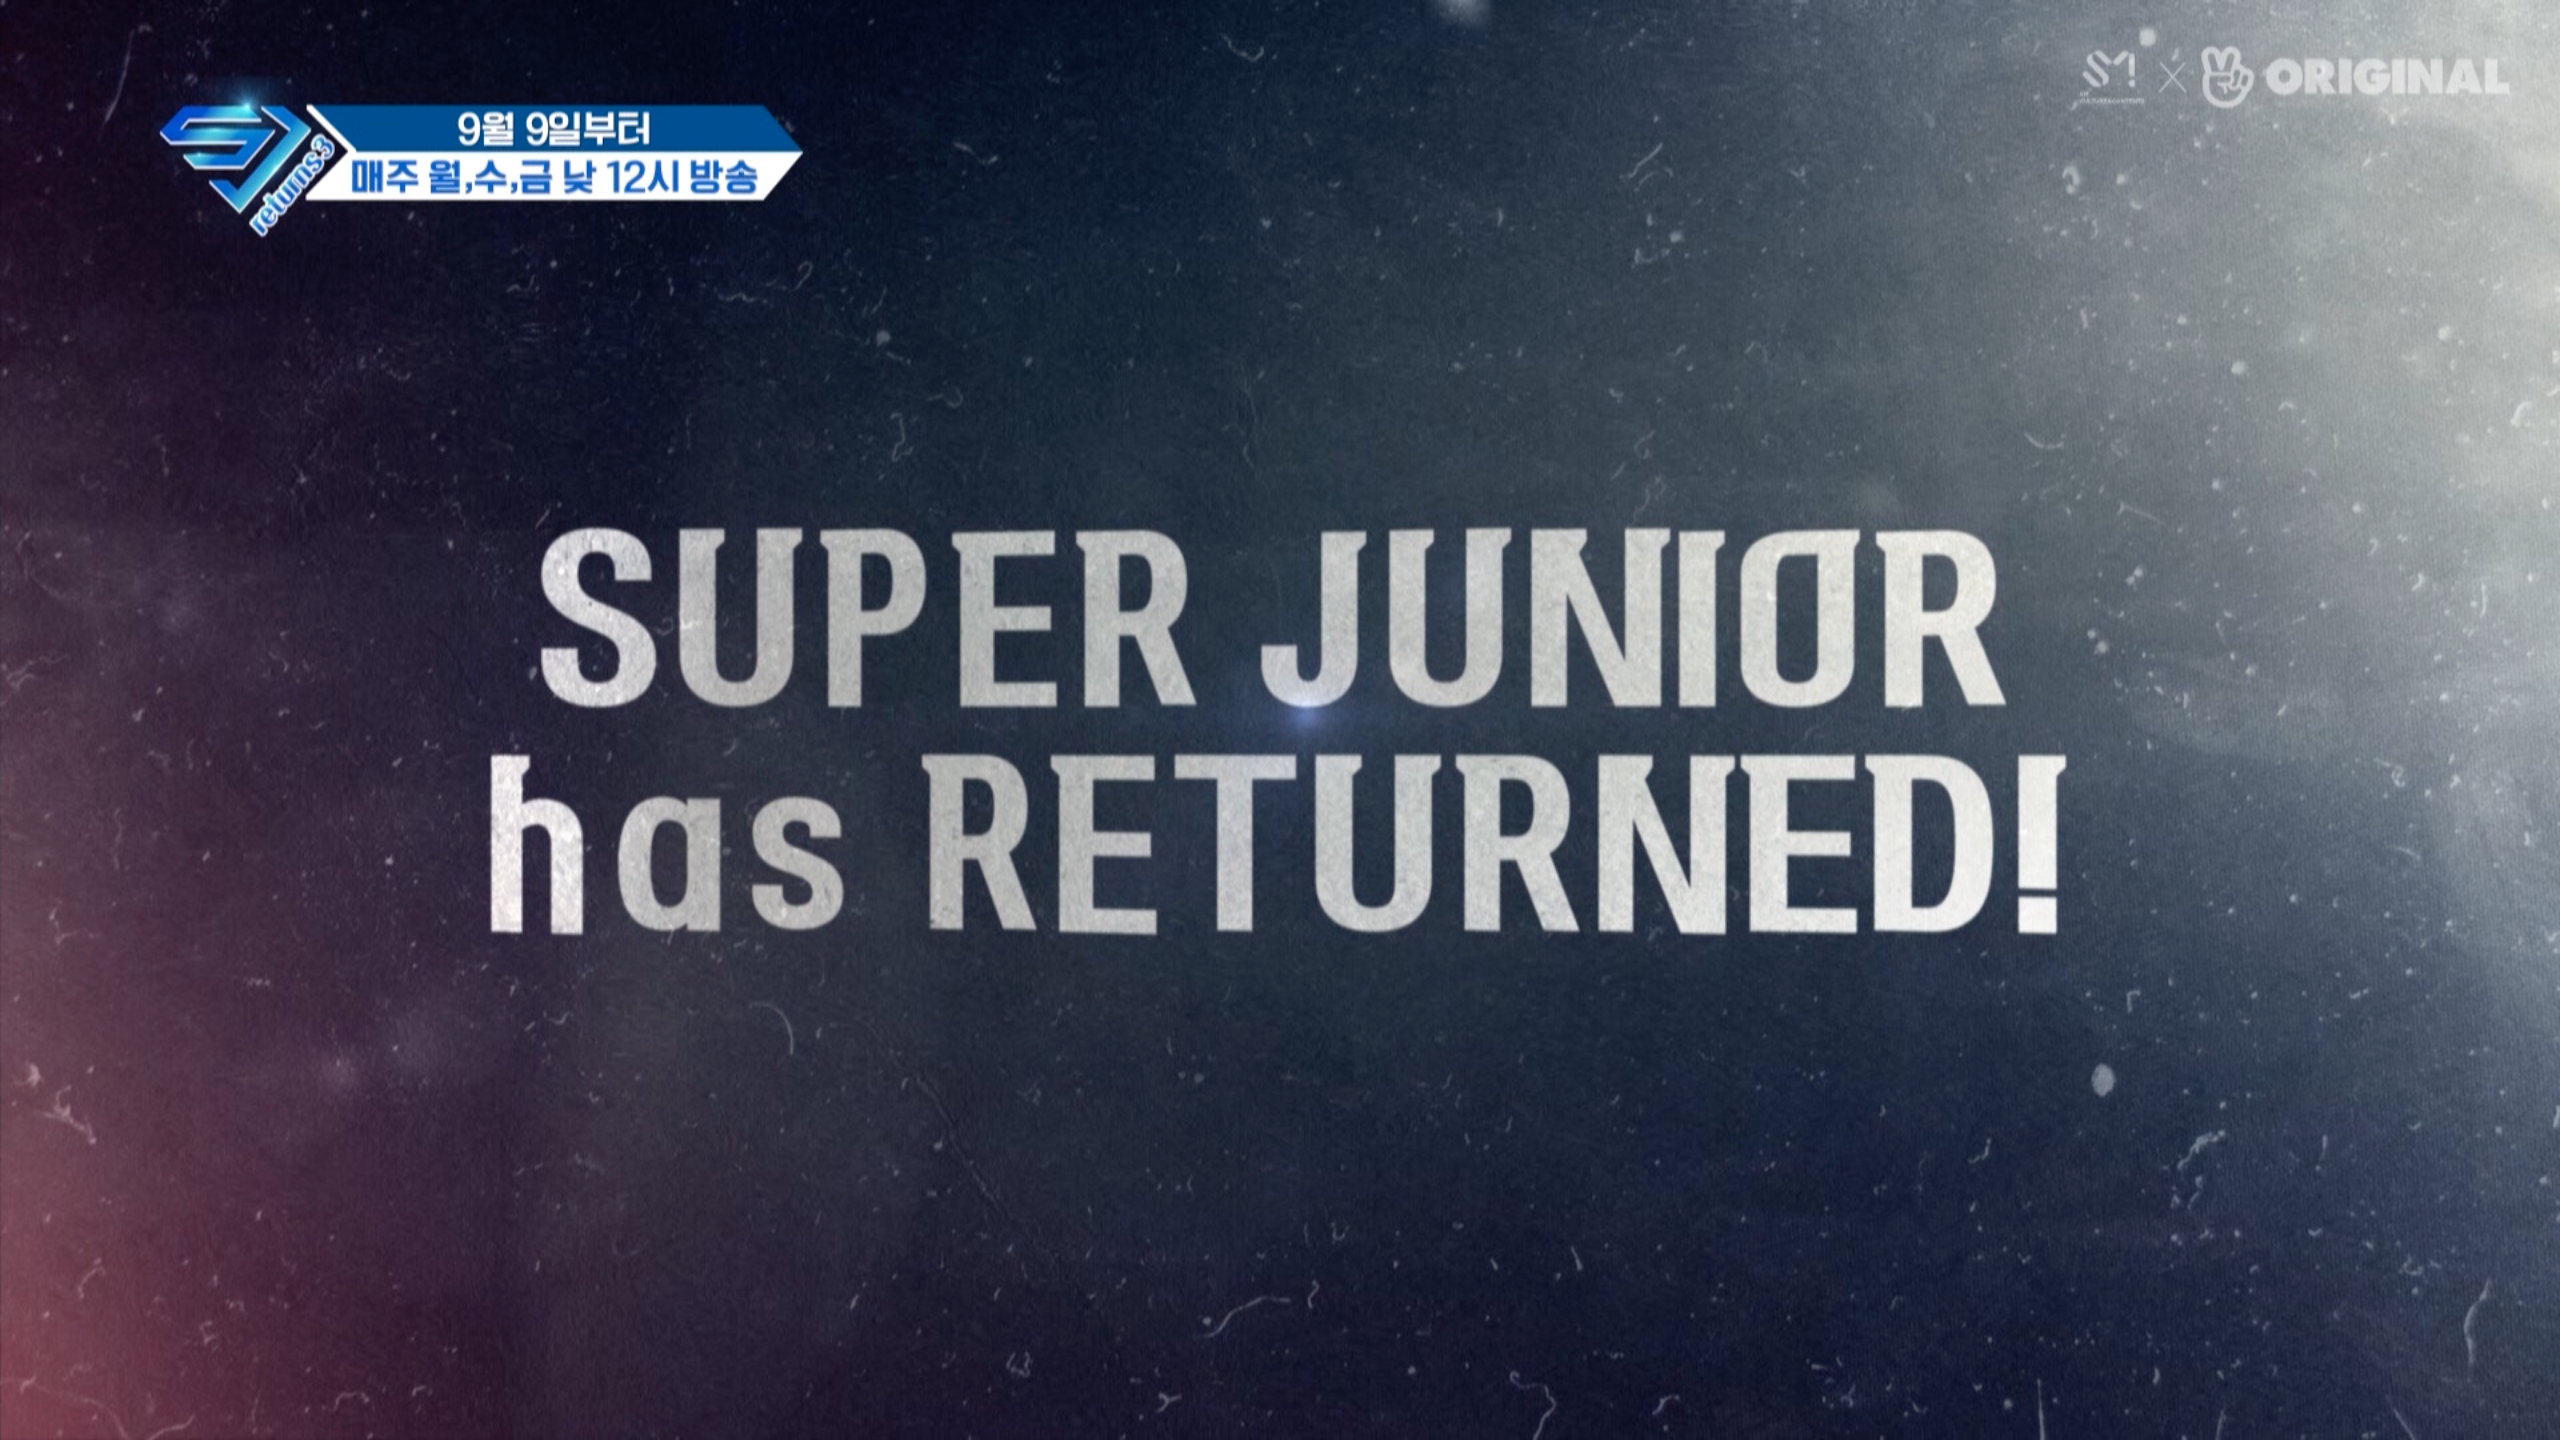 티저1. SUPER JUNIOR has RETURNED! Teaser1